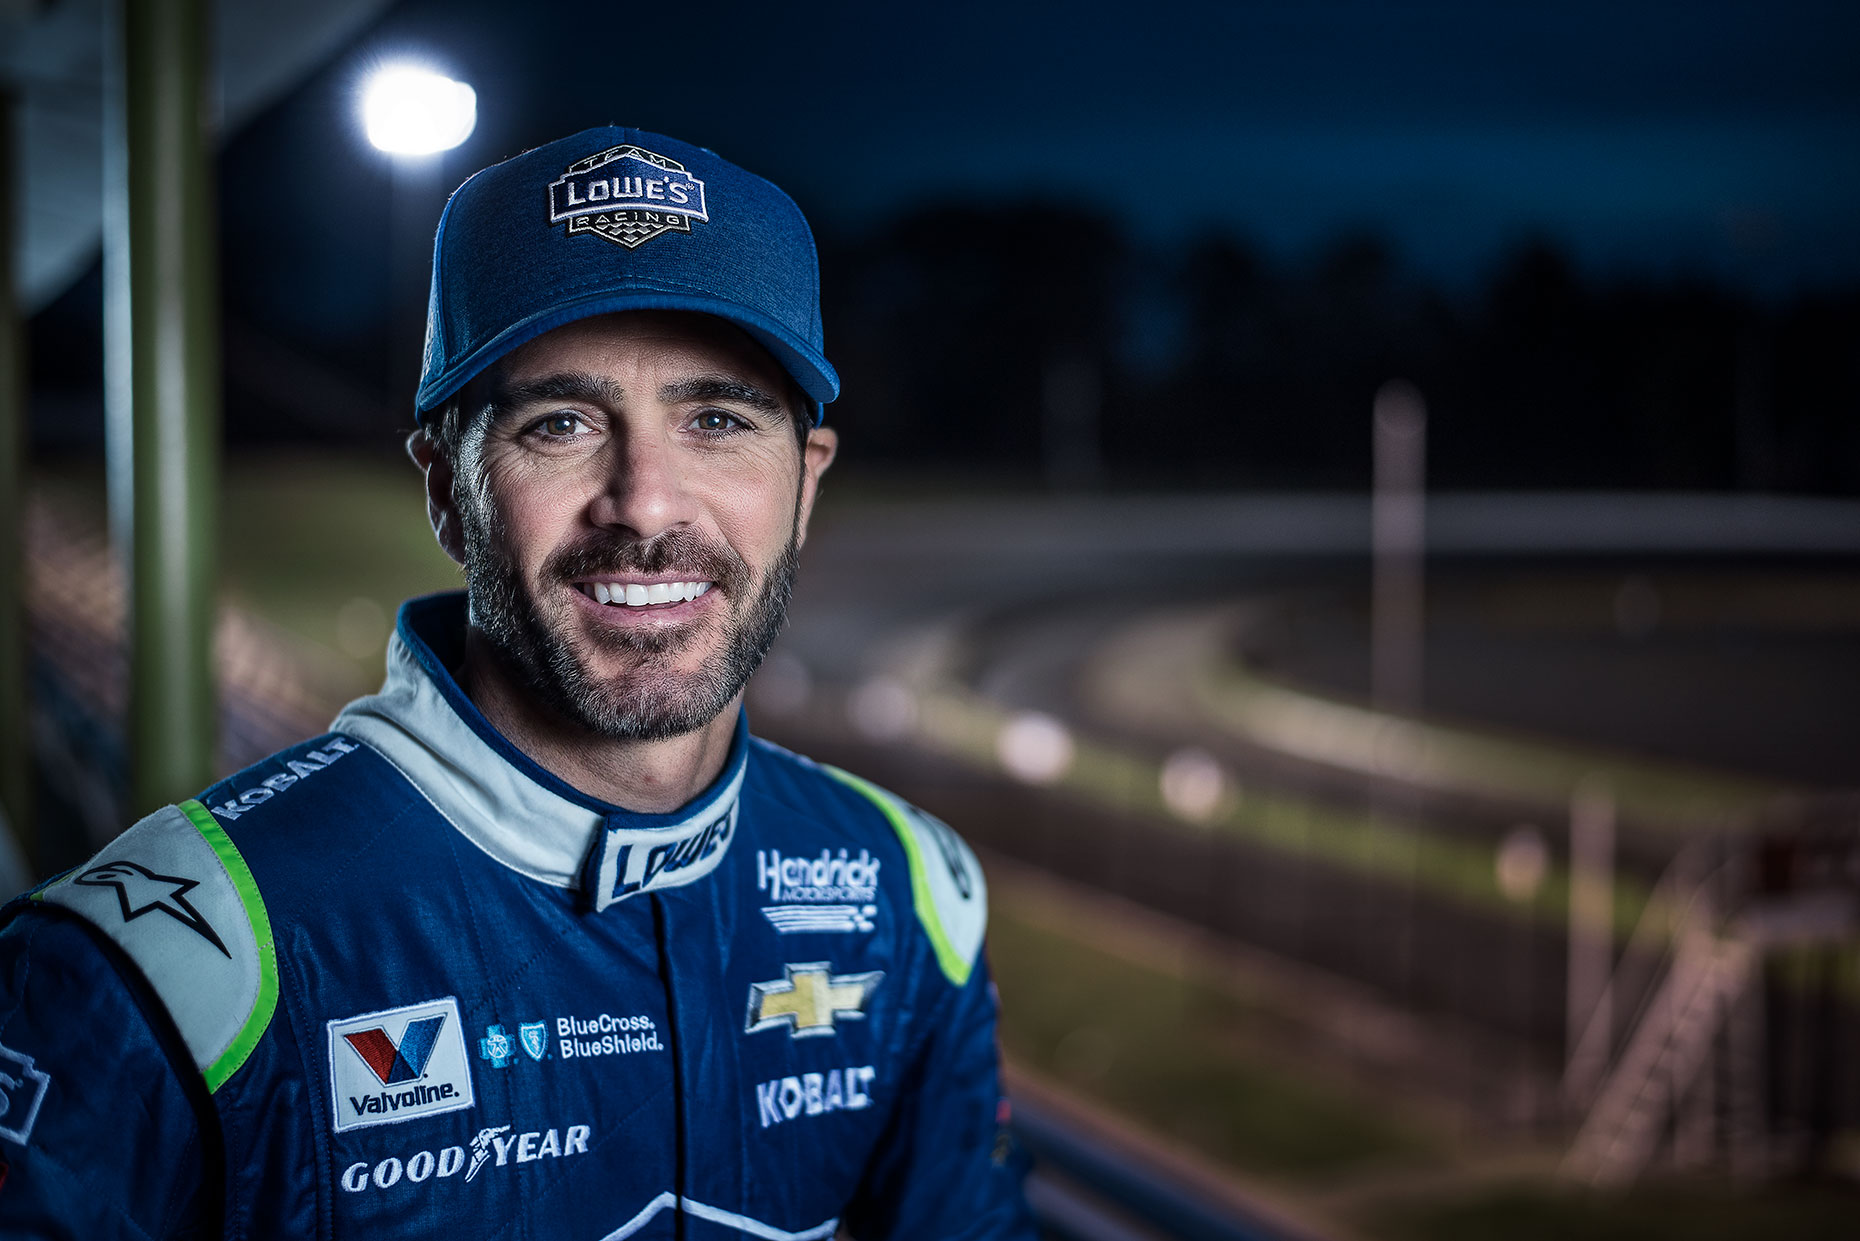 Lowes-Racing-Jimmie-portrait2